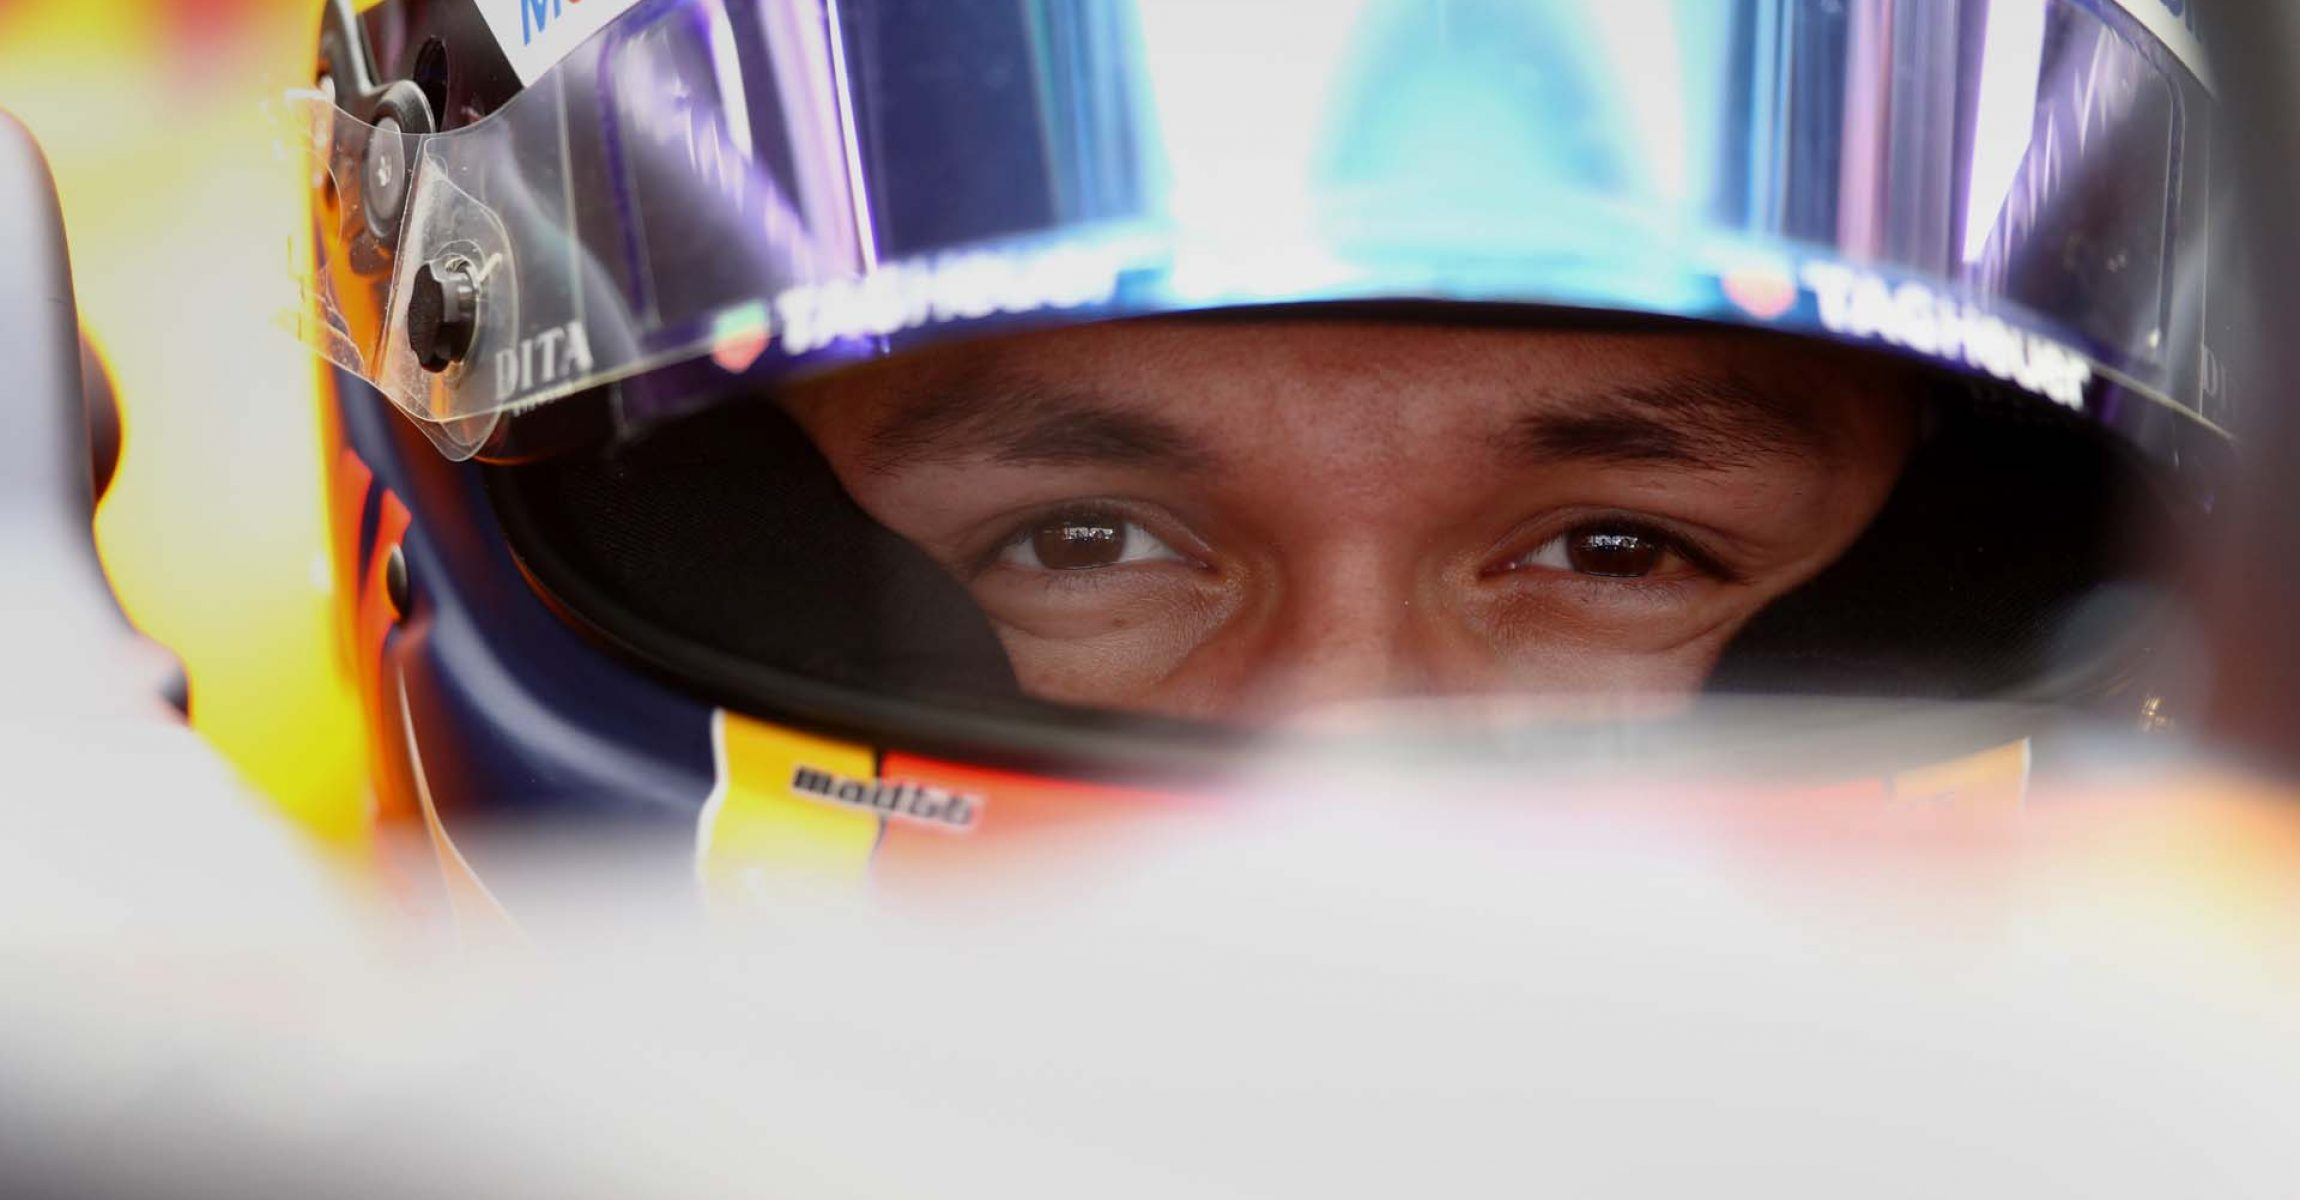 BARCELONA, SPAIN - FEBRUARY 20: Alexander Albon of Thailand and Red Bull Racing prepares to drive in the garage during day two of F1 Winter Testing at Circuit de Barcelona-Catalunya on February 20, 2020 in Barcelona, Spain. (Photo by Mark Thompson/Getty Images) // Getty Images / Red Bull Content Pool  // AP-235X2QGFN2111 // Usage for editorial use only //